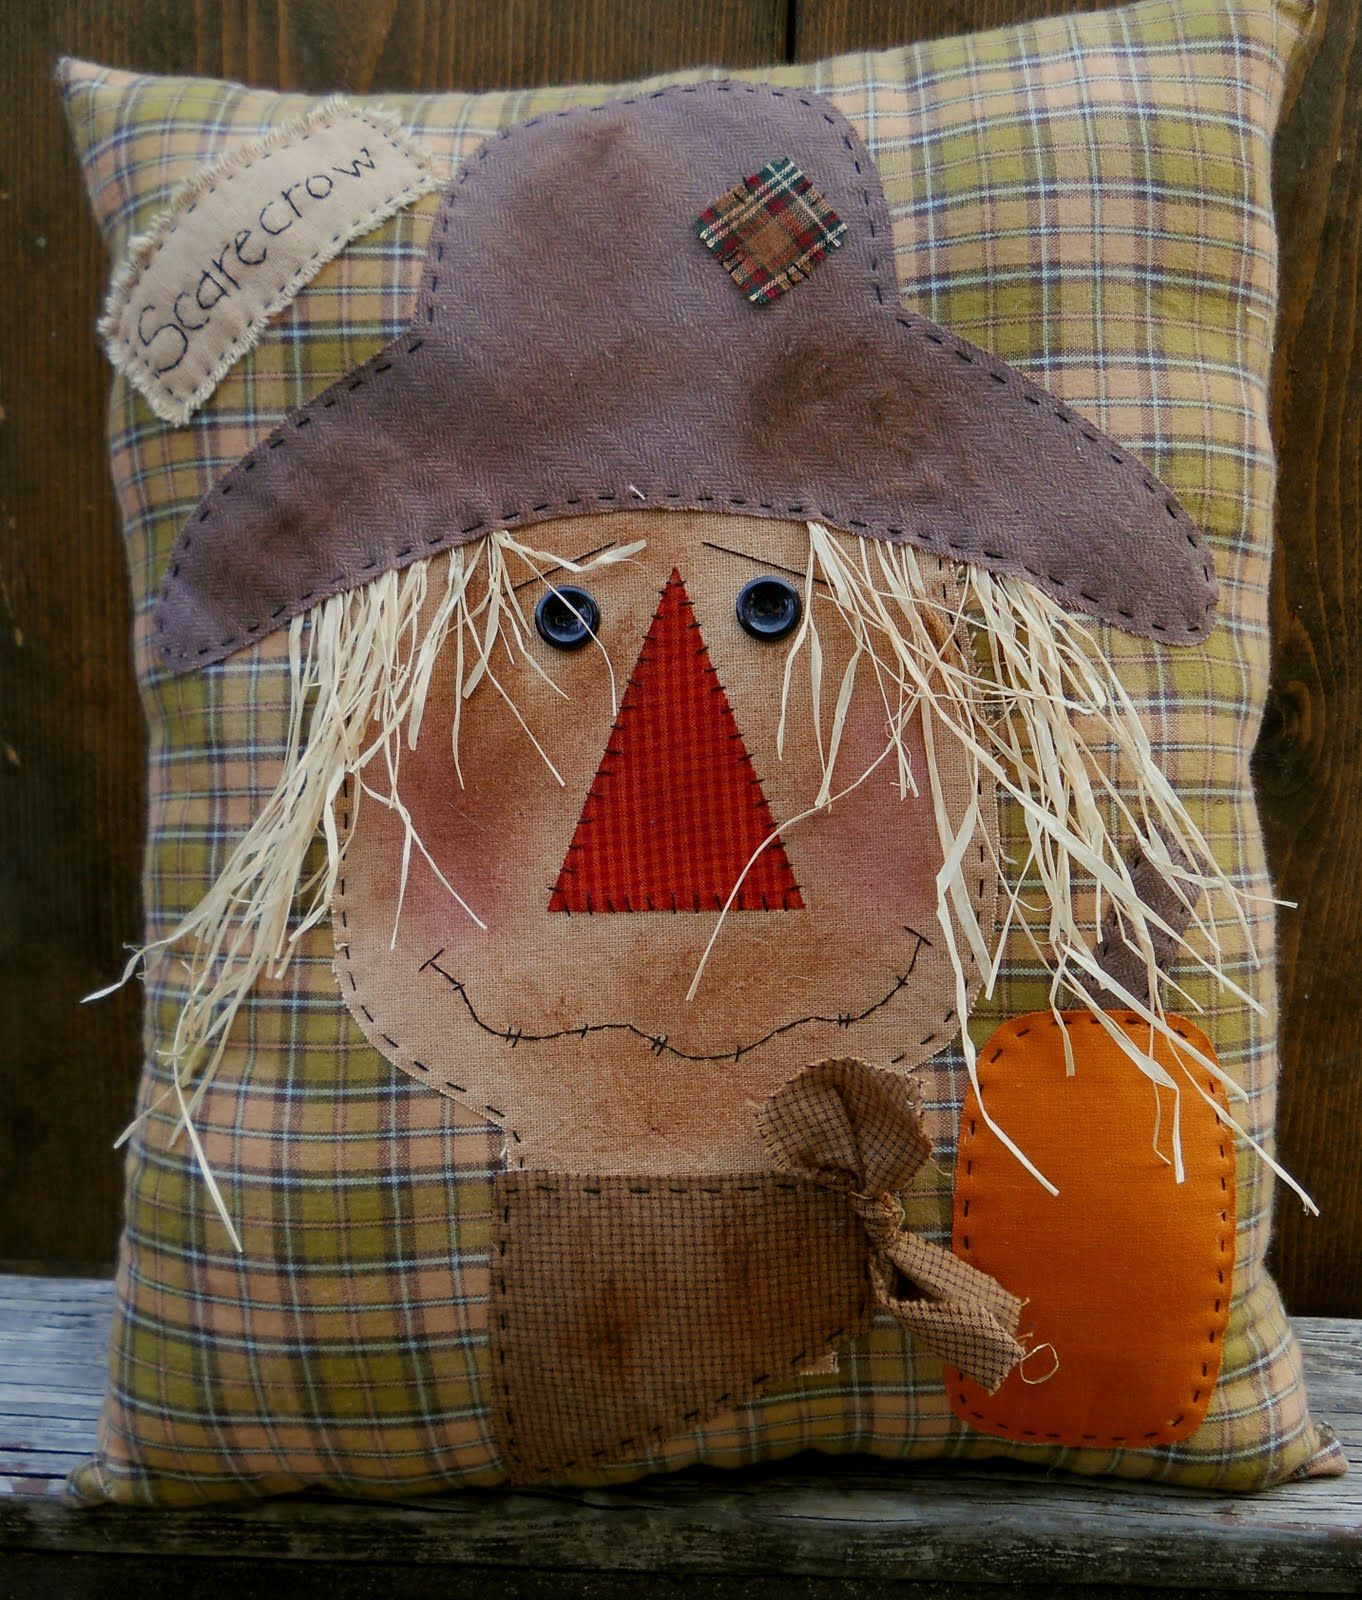 Cute Pillow Crafts : Scarecrow pillow - Cute!.... Fall Crafts Pinterest Pillows, Scarecrows and Craft